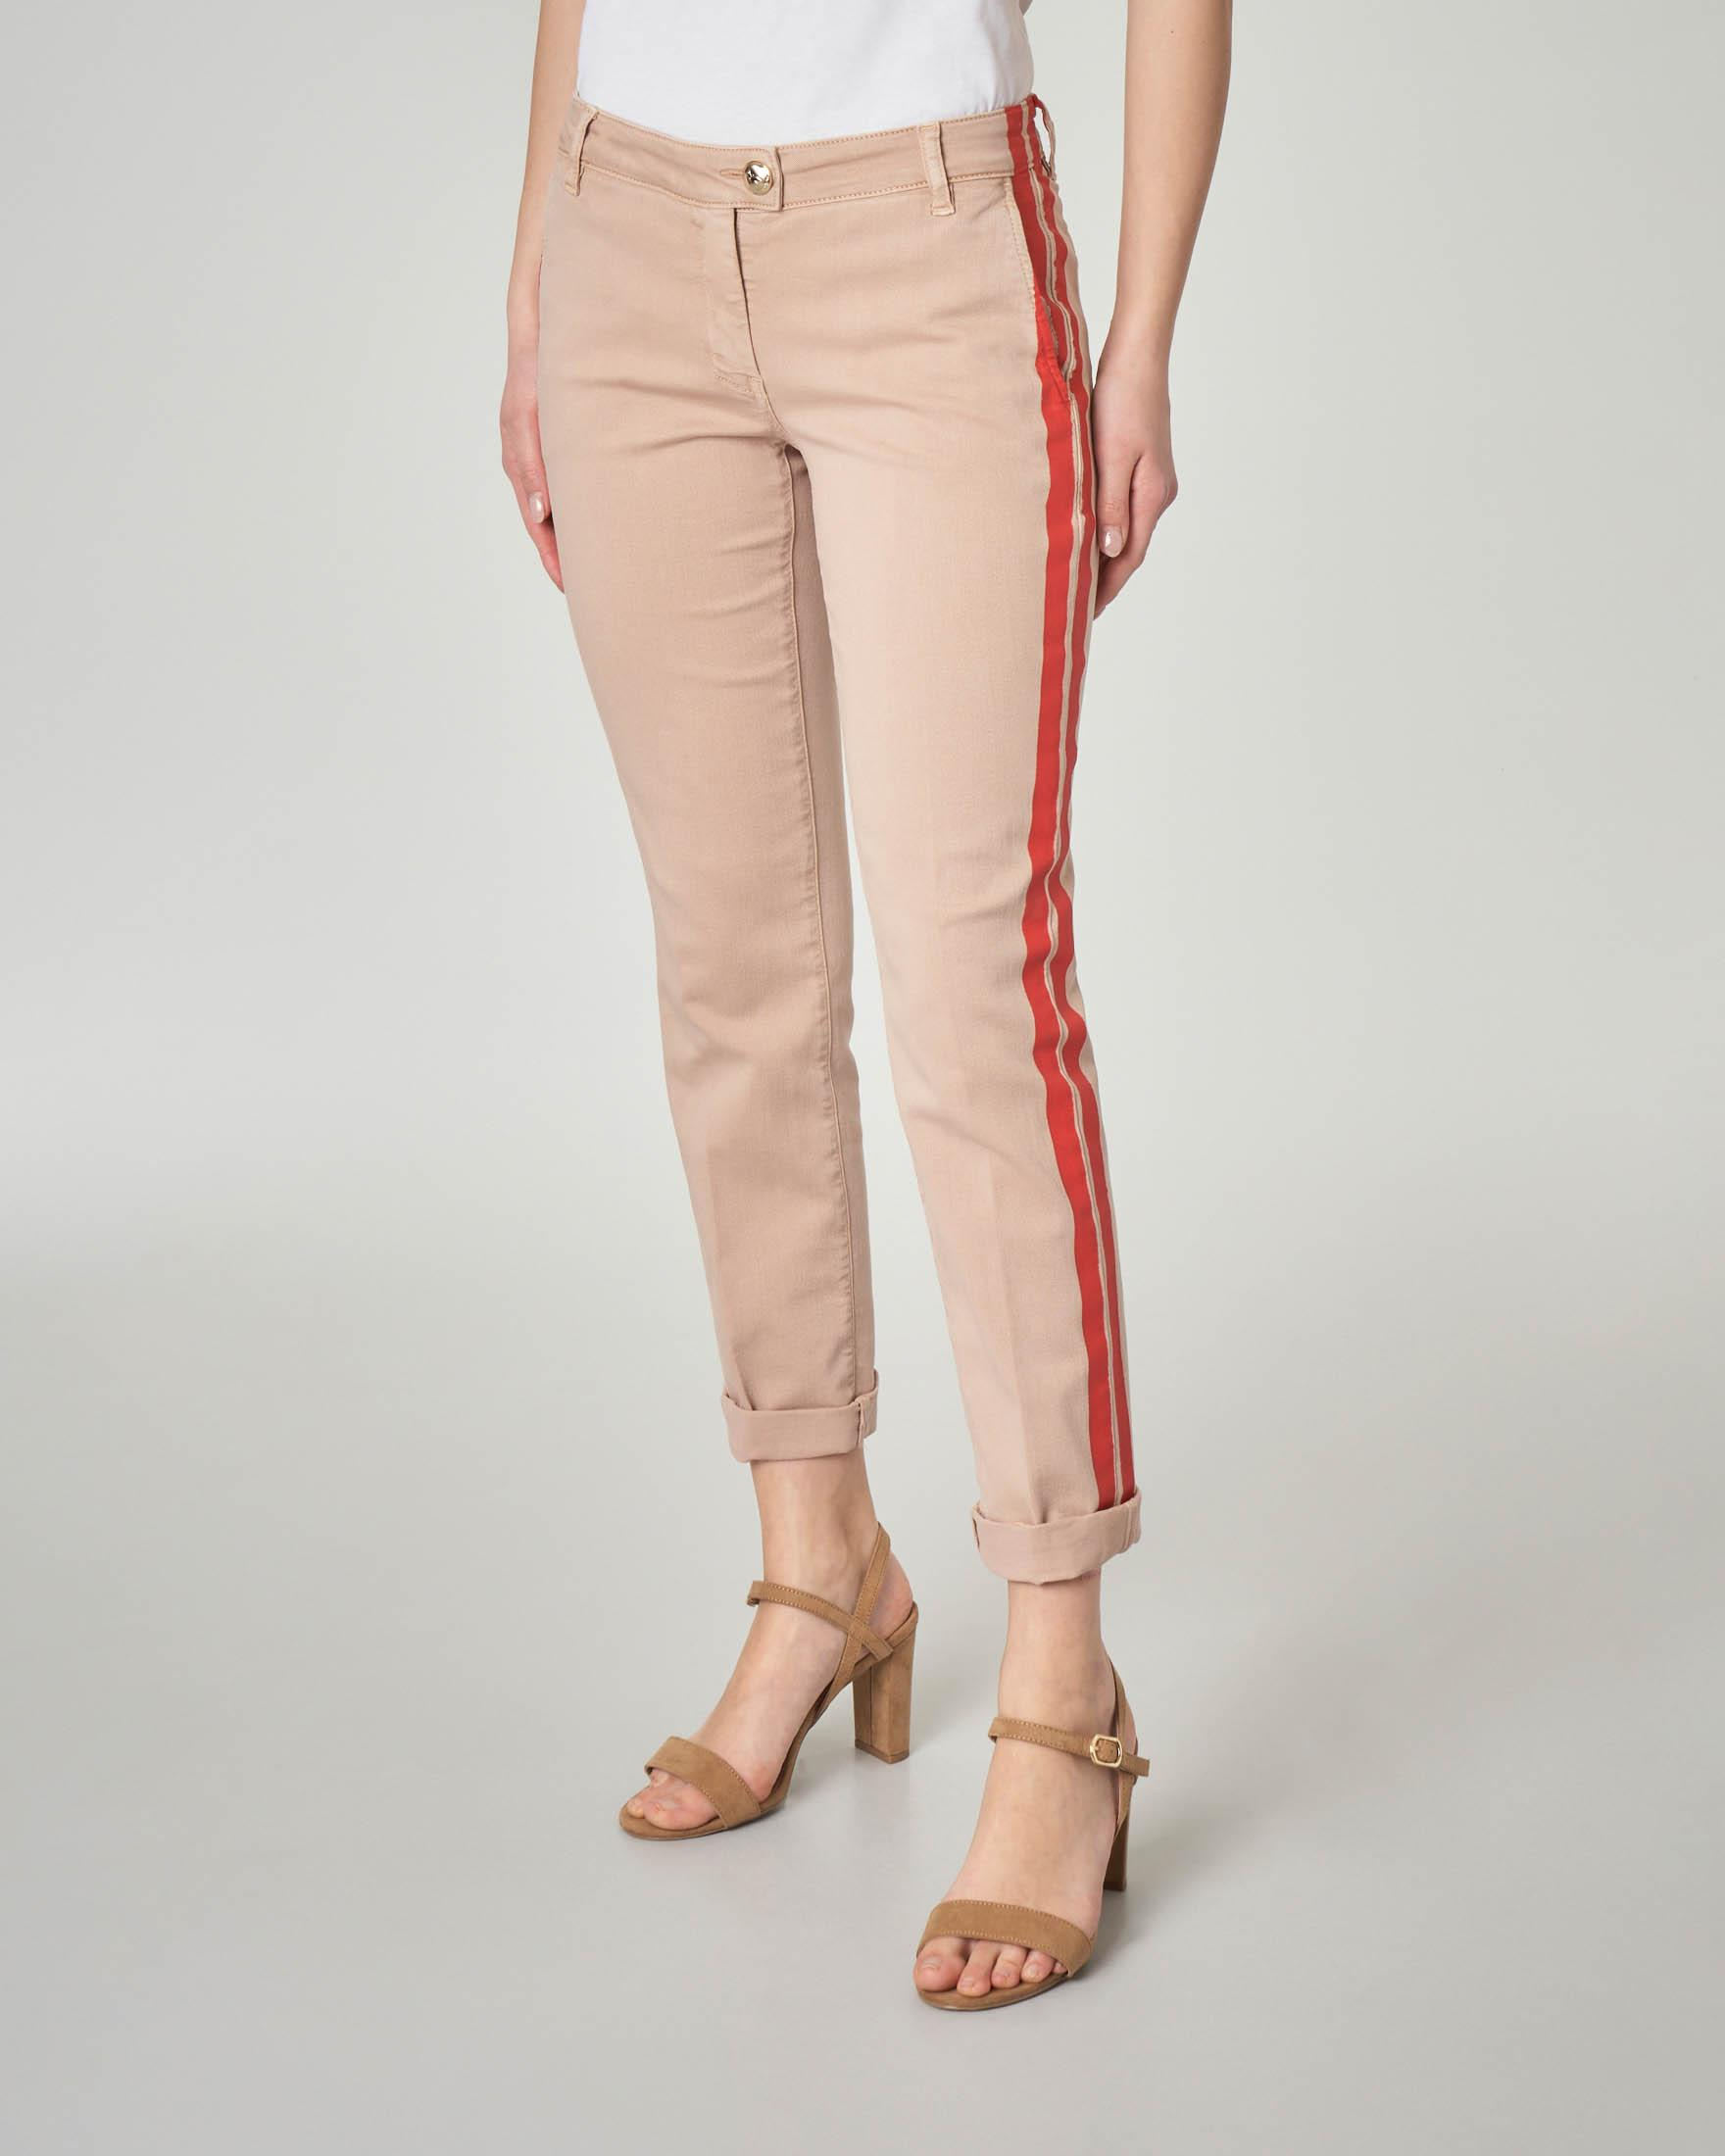 Chino in cotone stretch color beige con banda laterale rossa